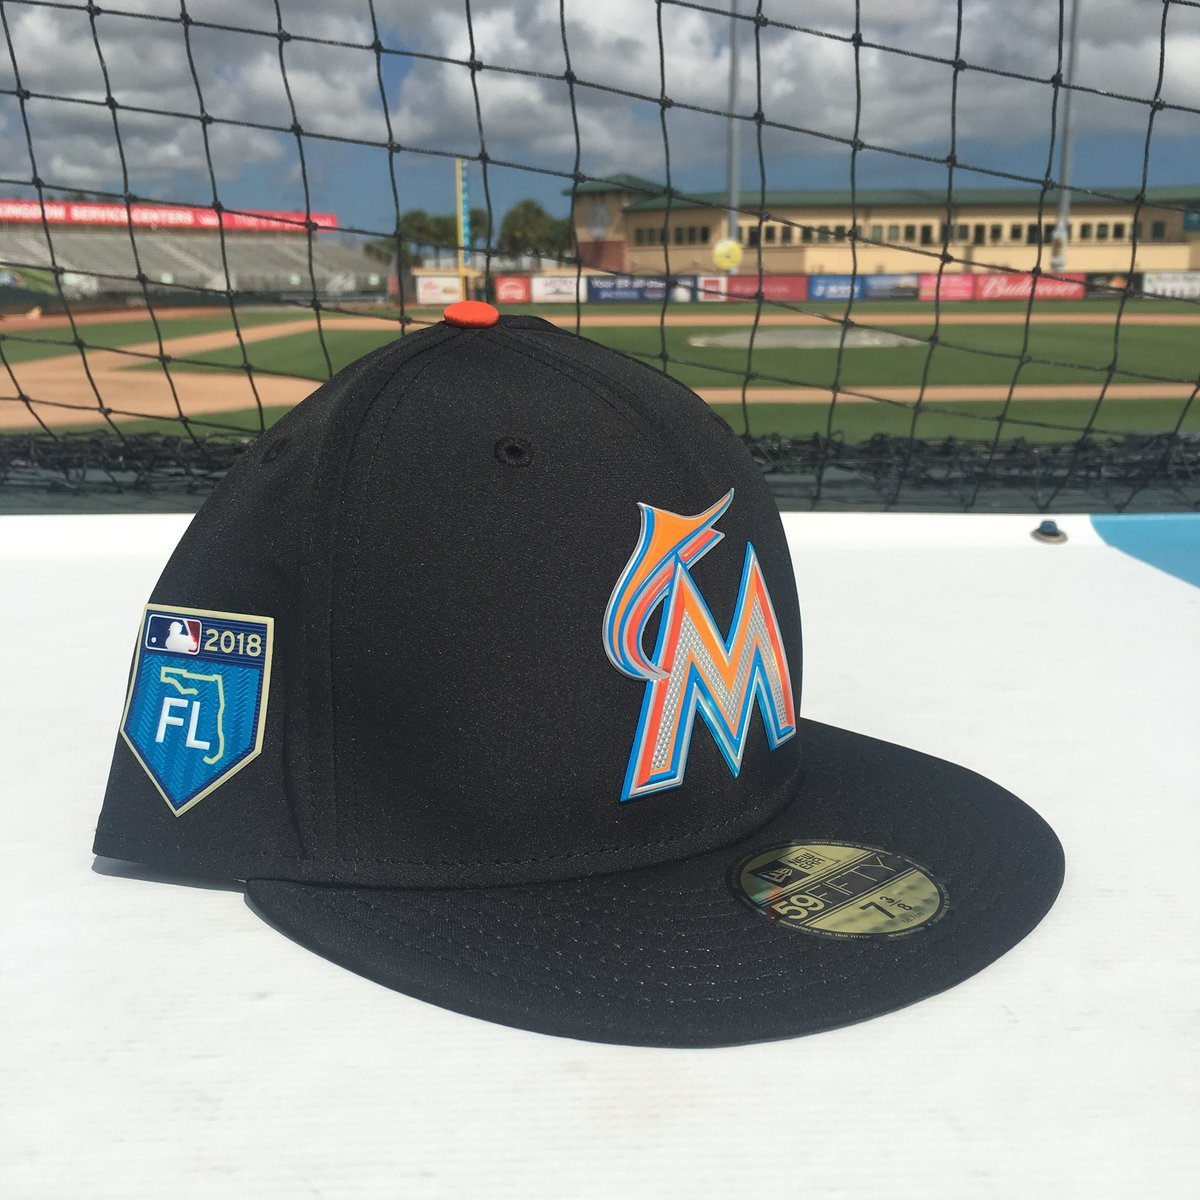 Roger Dean Chevrolet Stadium On Twitter Hats Off To Today S Item